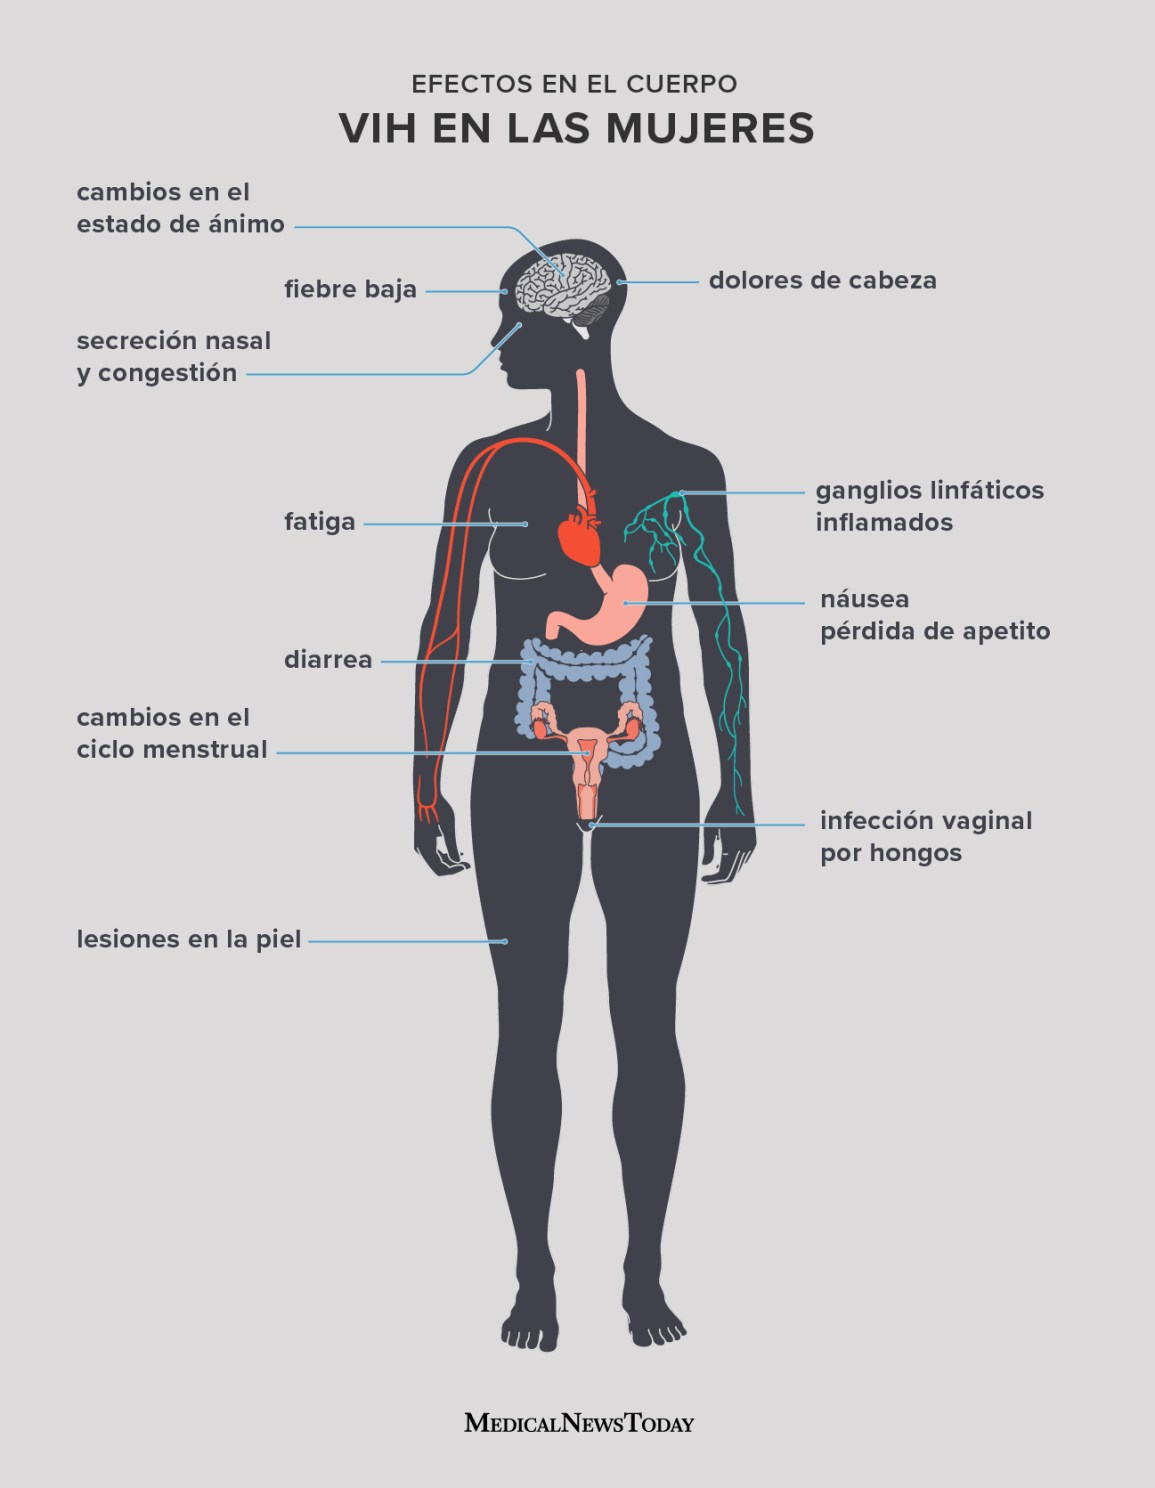 Spanish effects on the body HIV in women infographic